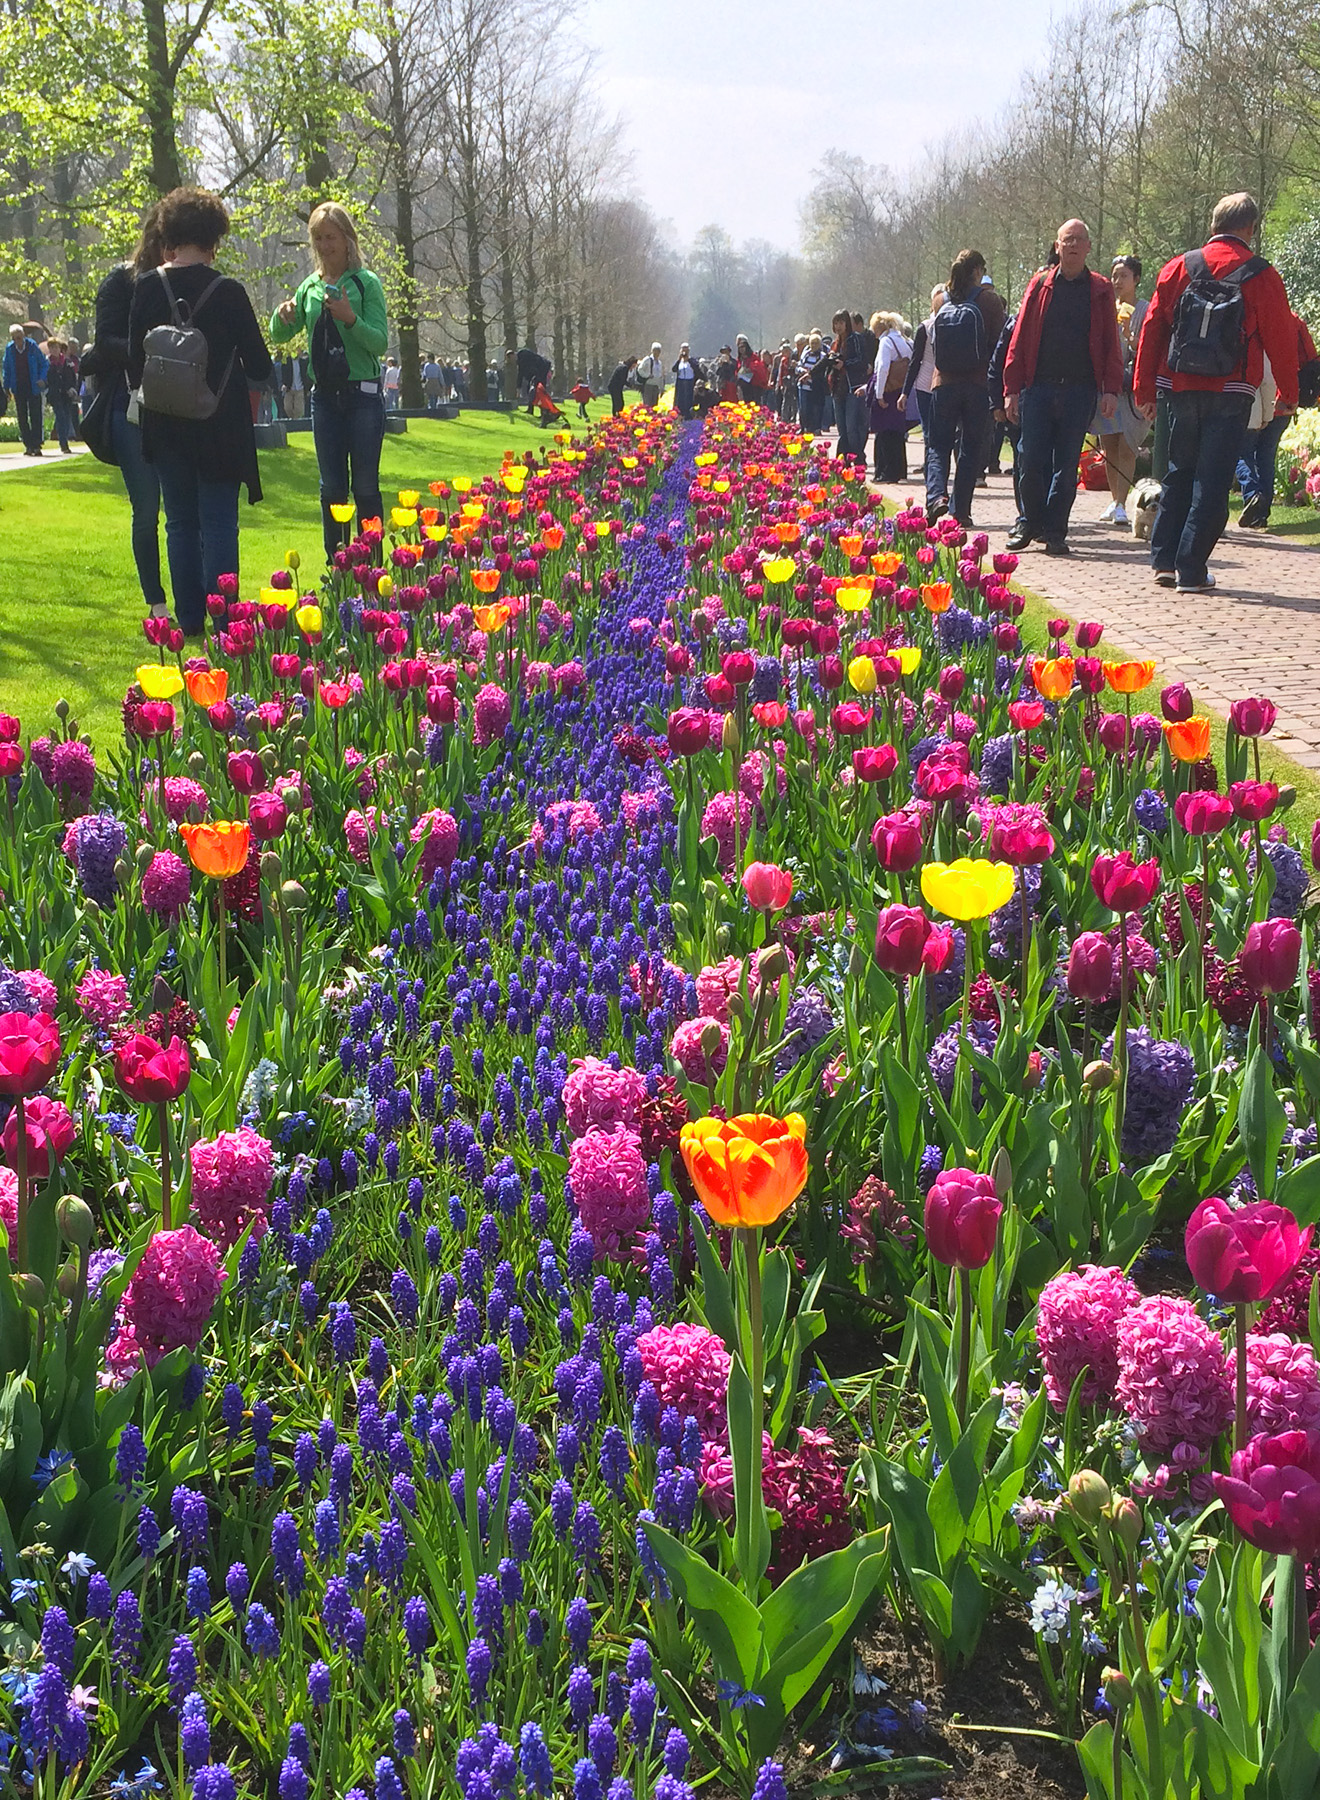 A carpet of flowers and tulips at the park Keukenhof in the Netherlands